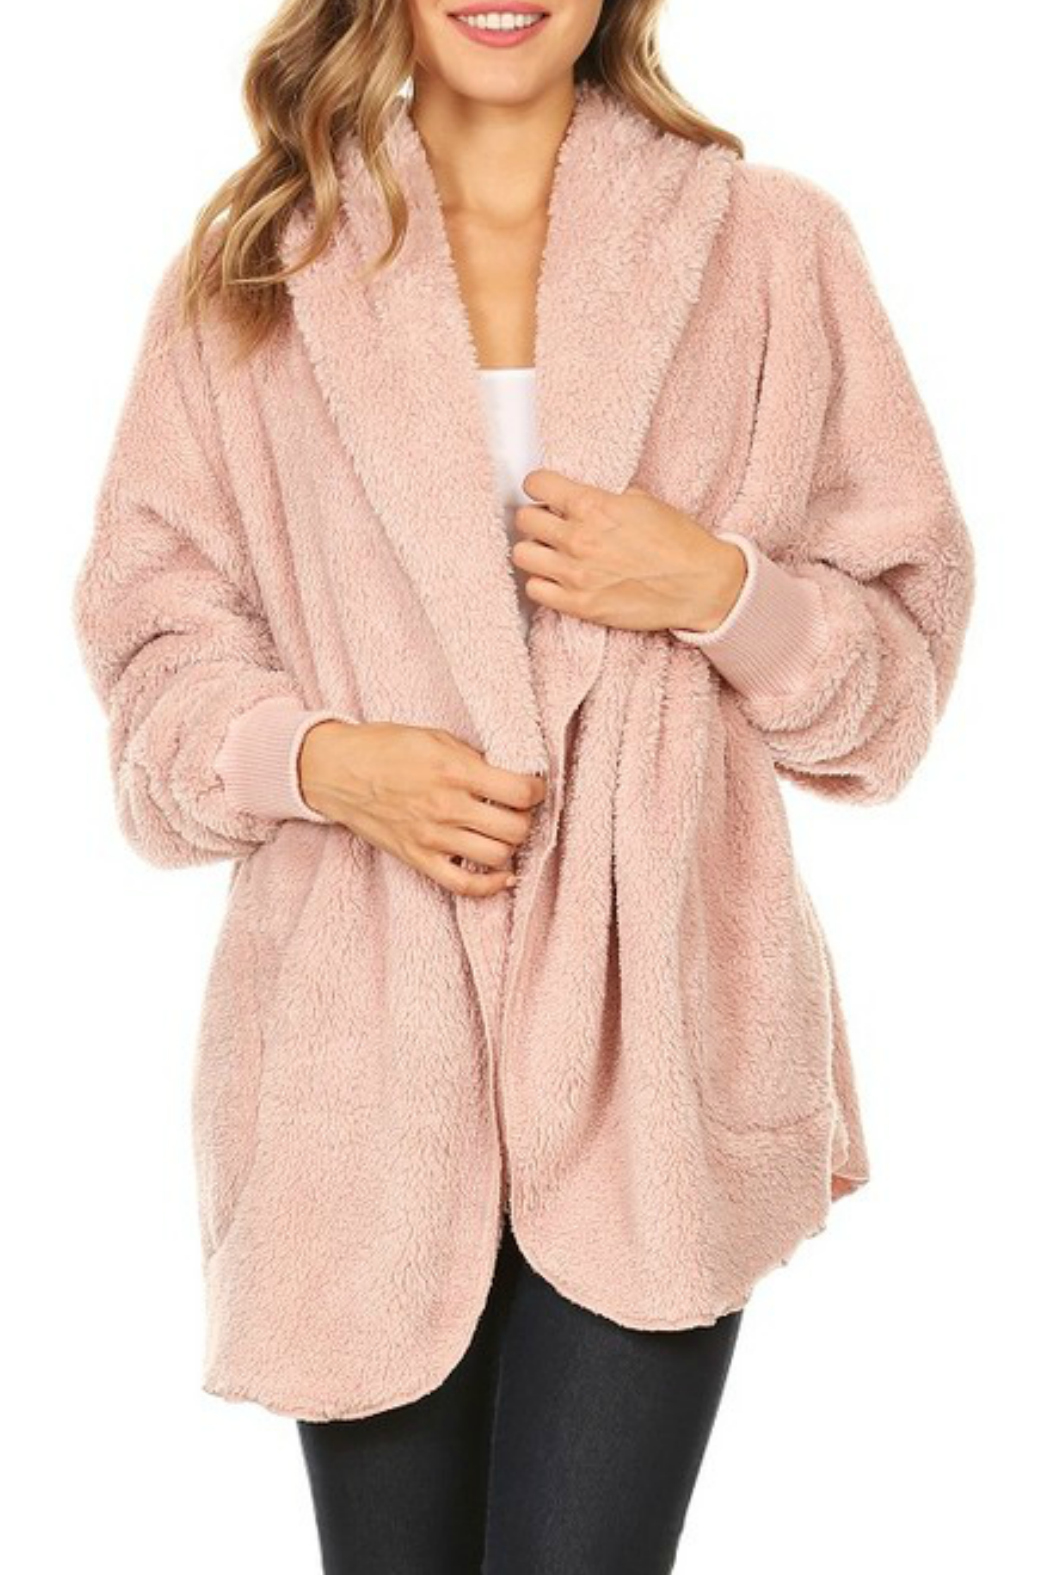 cf8dbc431 T Party Fuzzy Faux Fur Jacket from New Jersey by Charlotte's Web ...